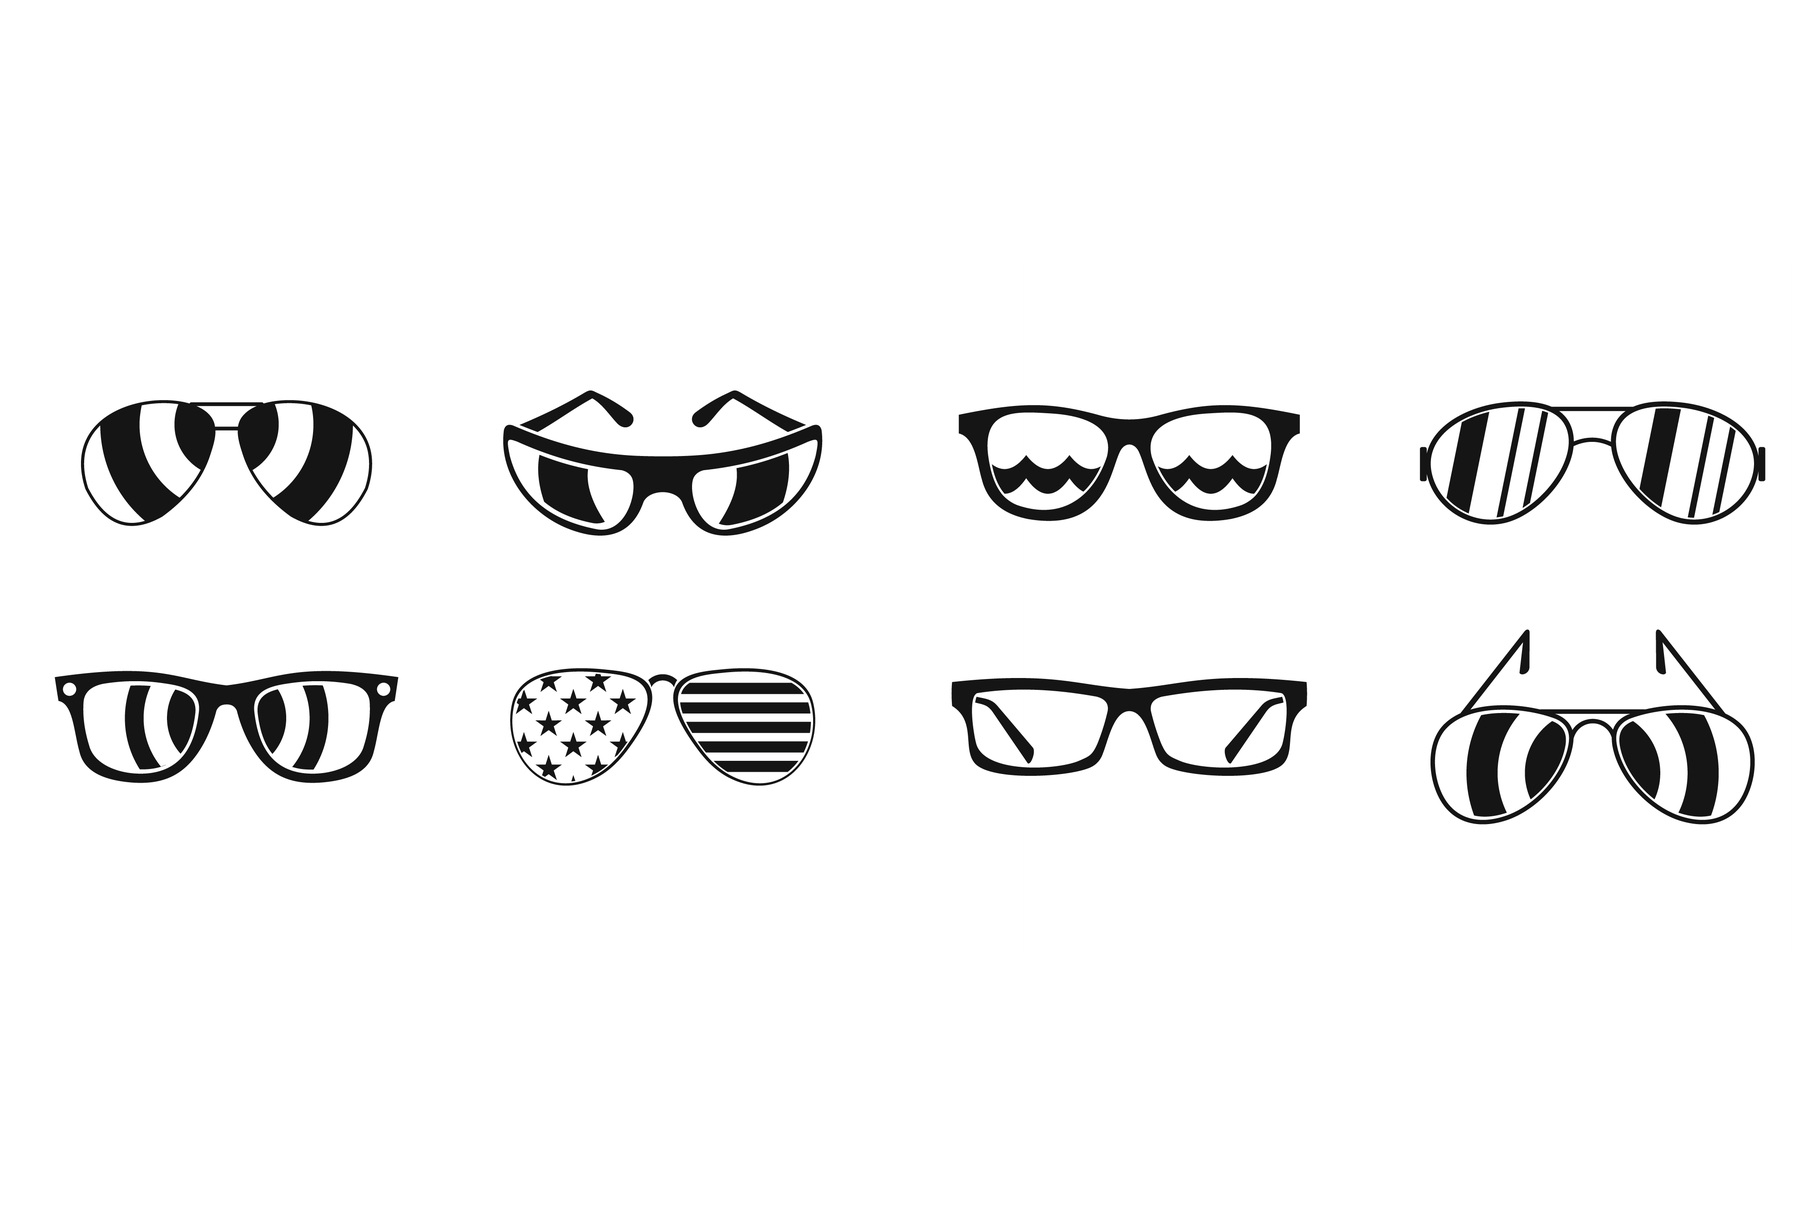 Sun glasses icon set, simple style example image 1